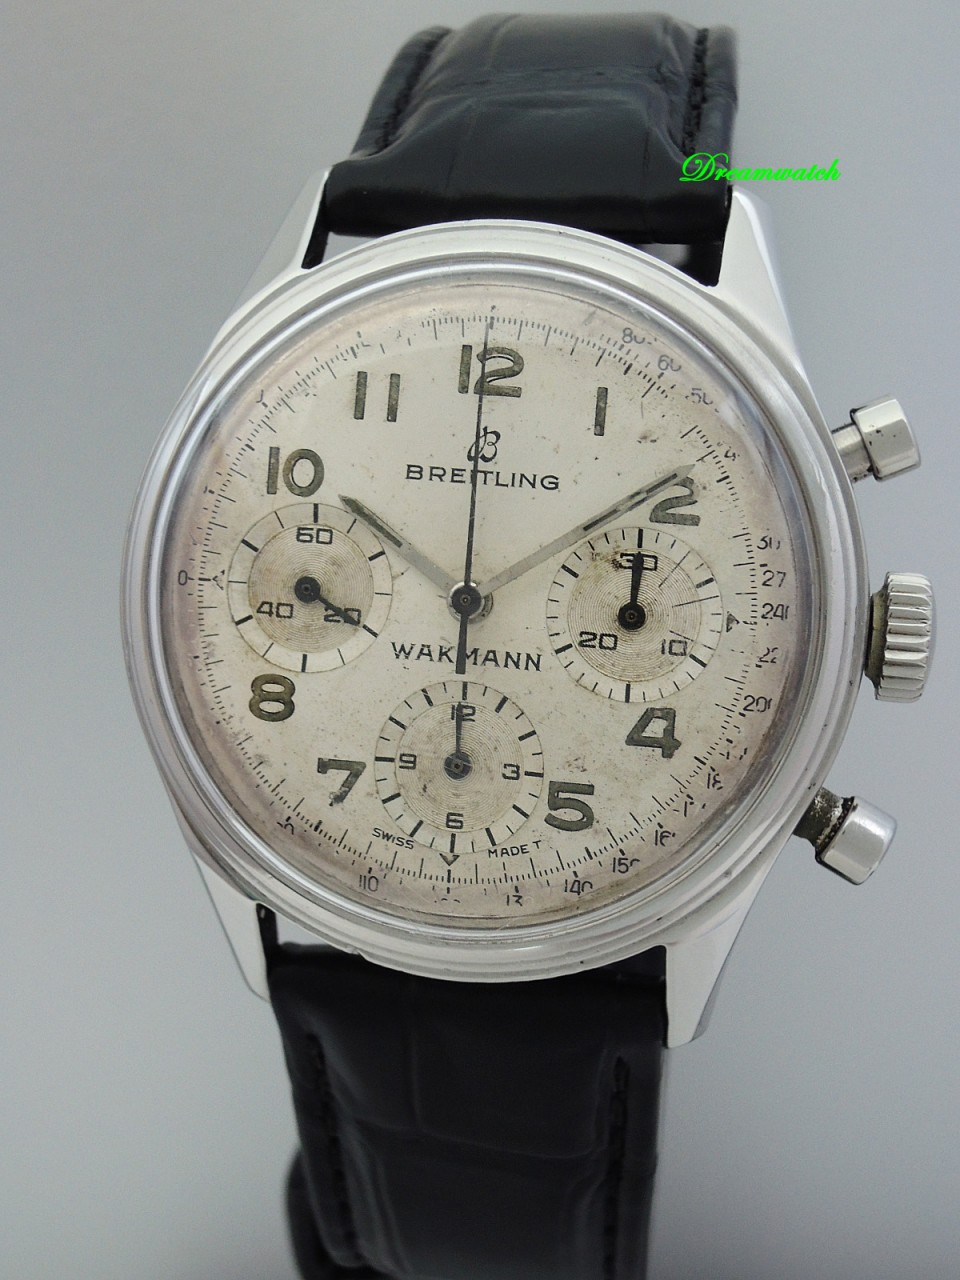 * Very Rare Breitling- Wakmann Chronograph 765 -THE WATCH FROM THE BOOK!